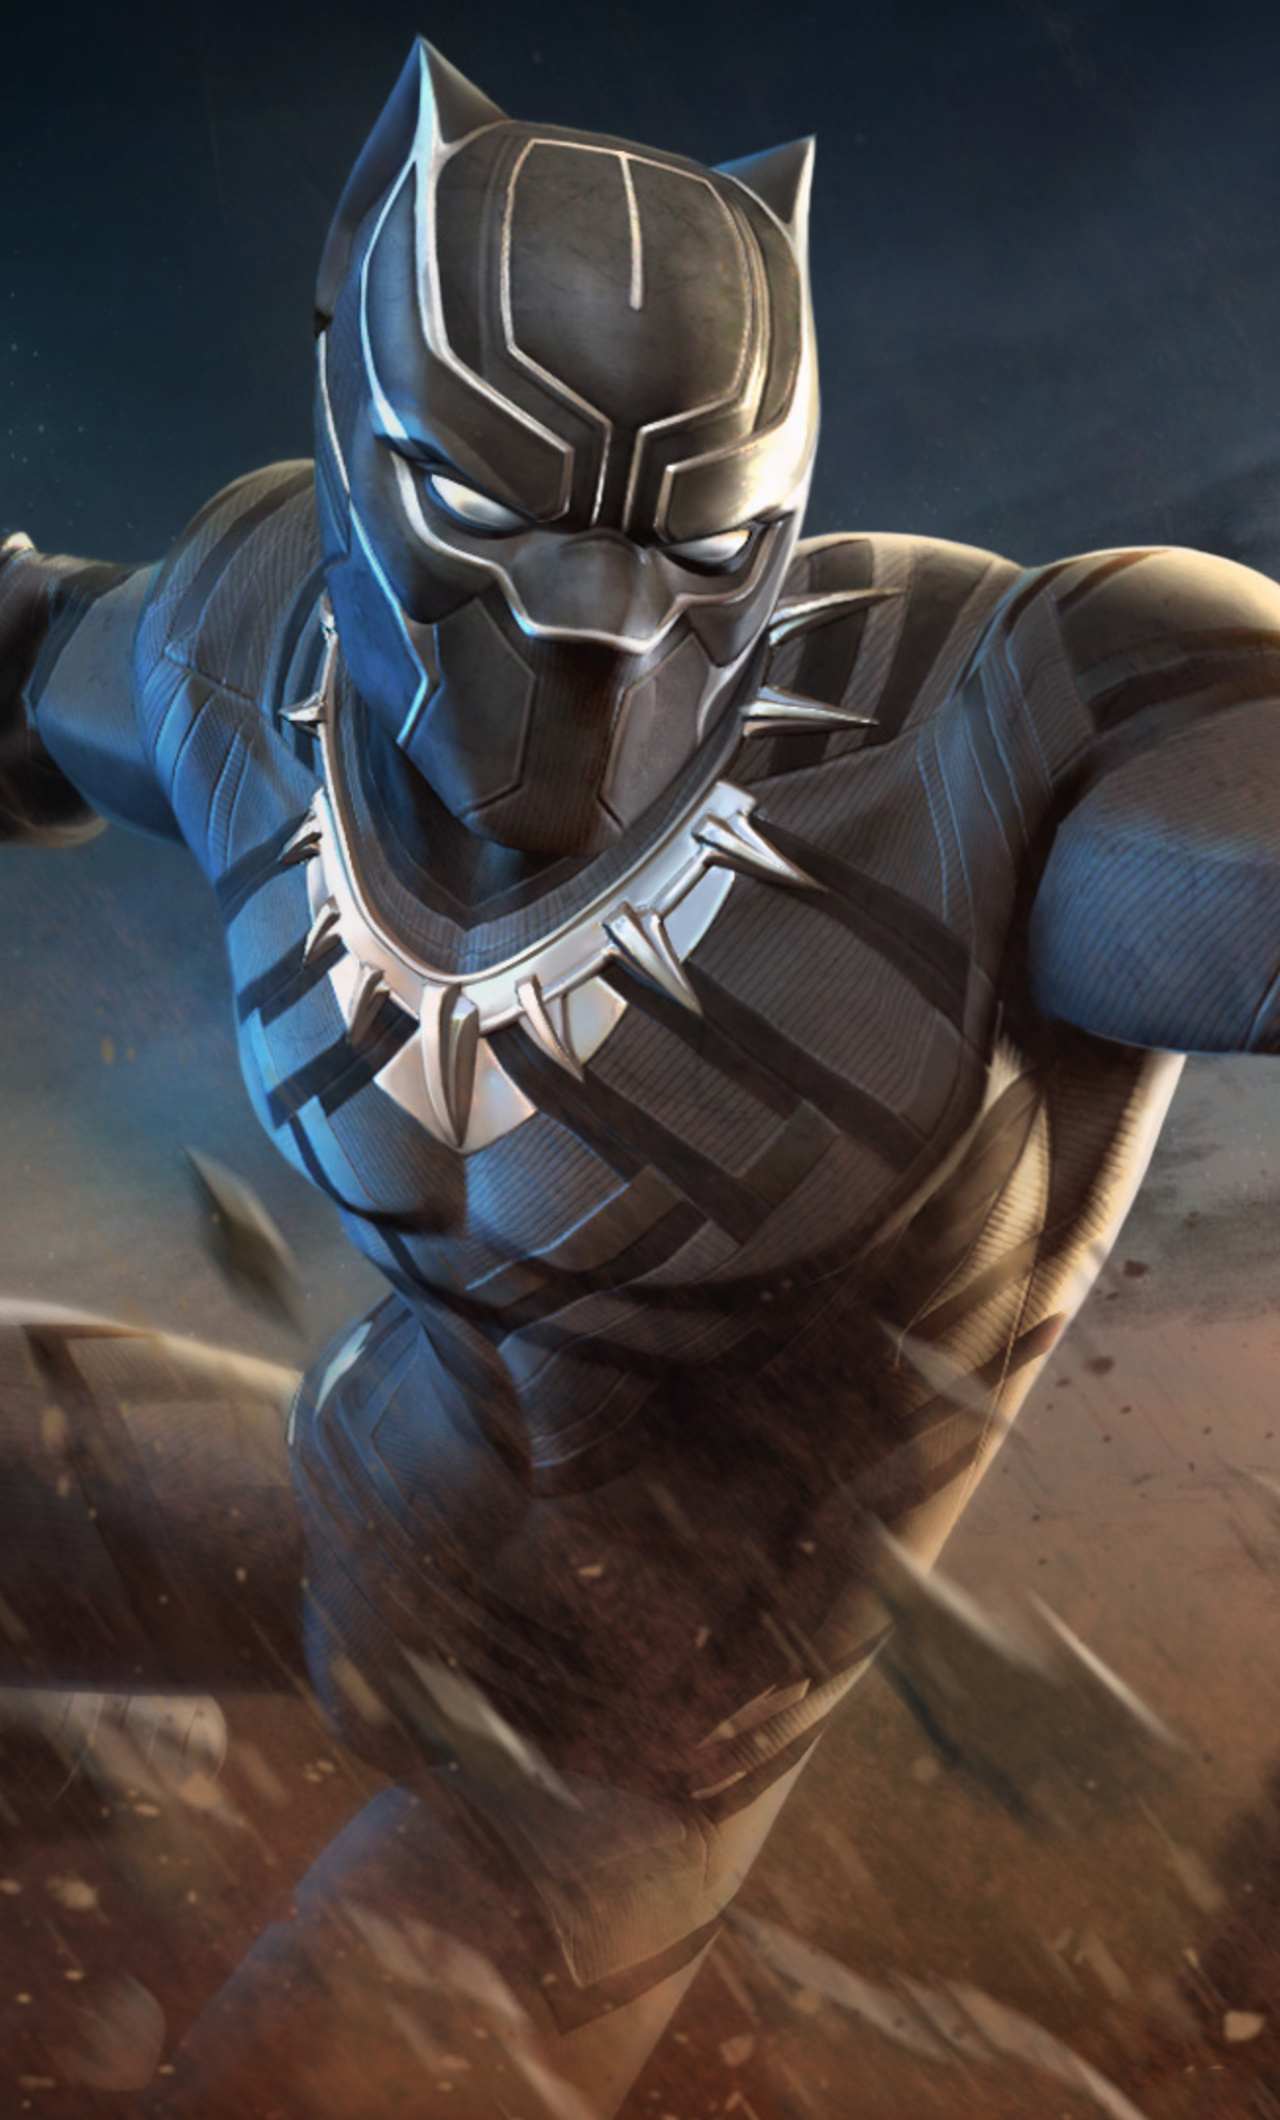 Amazing Wallpaper Marvel Black Panther - black-panther-marvel-contest-of-champions-2e-1280x2120  Trends_301294.jpg